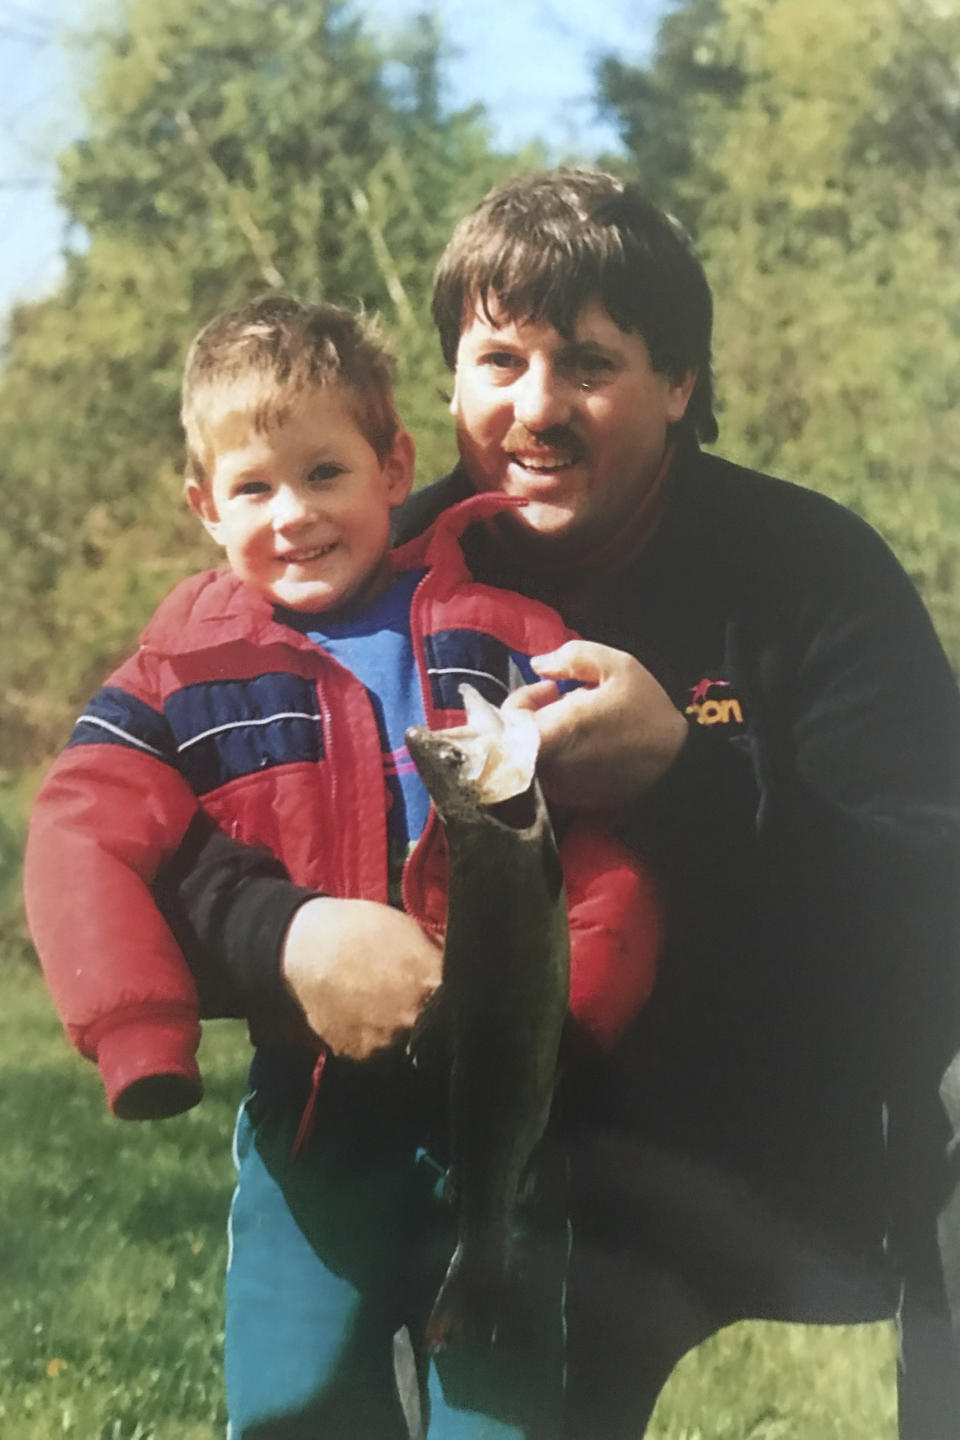 In this photo provided by Brett Eagleson, Sept. 11 victim Bruce Eagleson holds his son Brett and a fish they caught together at a fishing derby in New Hampshire in 1993. Eagleson and others who have lost family on Sept 11 are seeking the release of FBI documents that allege Saudi Arabia's role in the terrorist attacks. A lawsuit that accuses Saudi Arabia of being complicit took a major step forward this year with the questioning under oath of former Saudi officials, but those depositions remain under seal and the U.S. has withheld a trove of other documents as too sensitive for disclosure. (Brett Eagleson via AP)